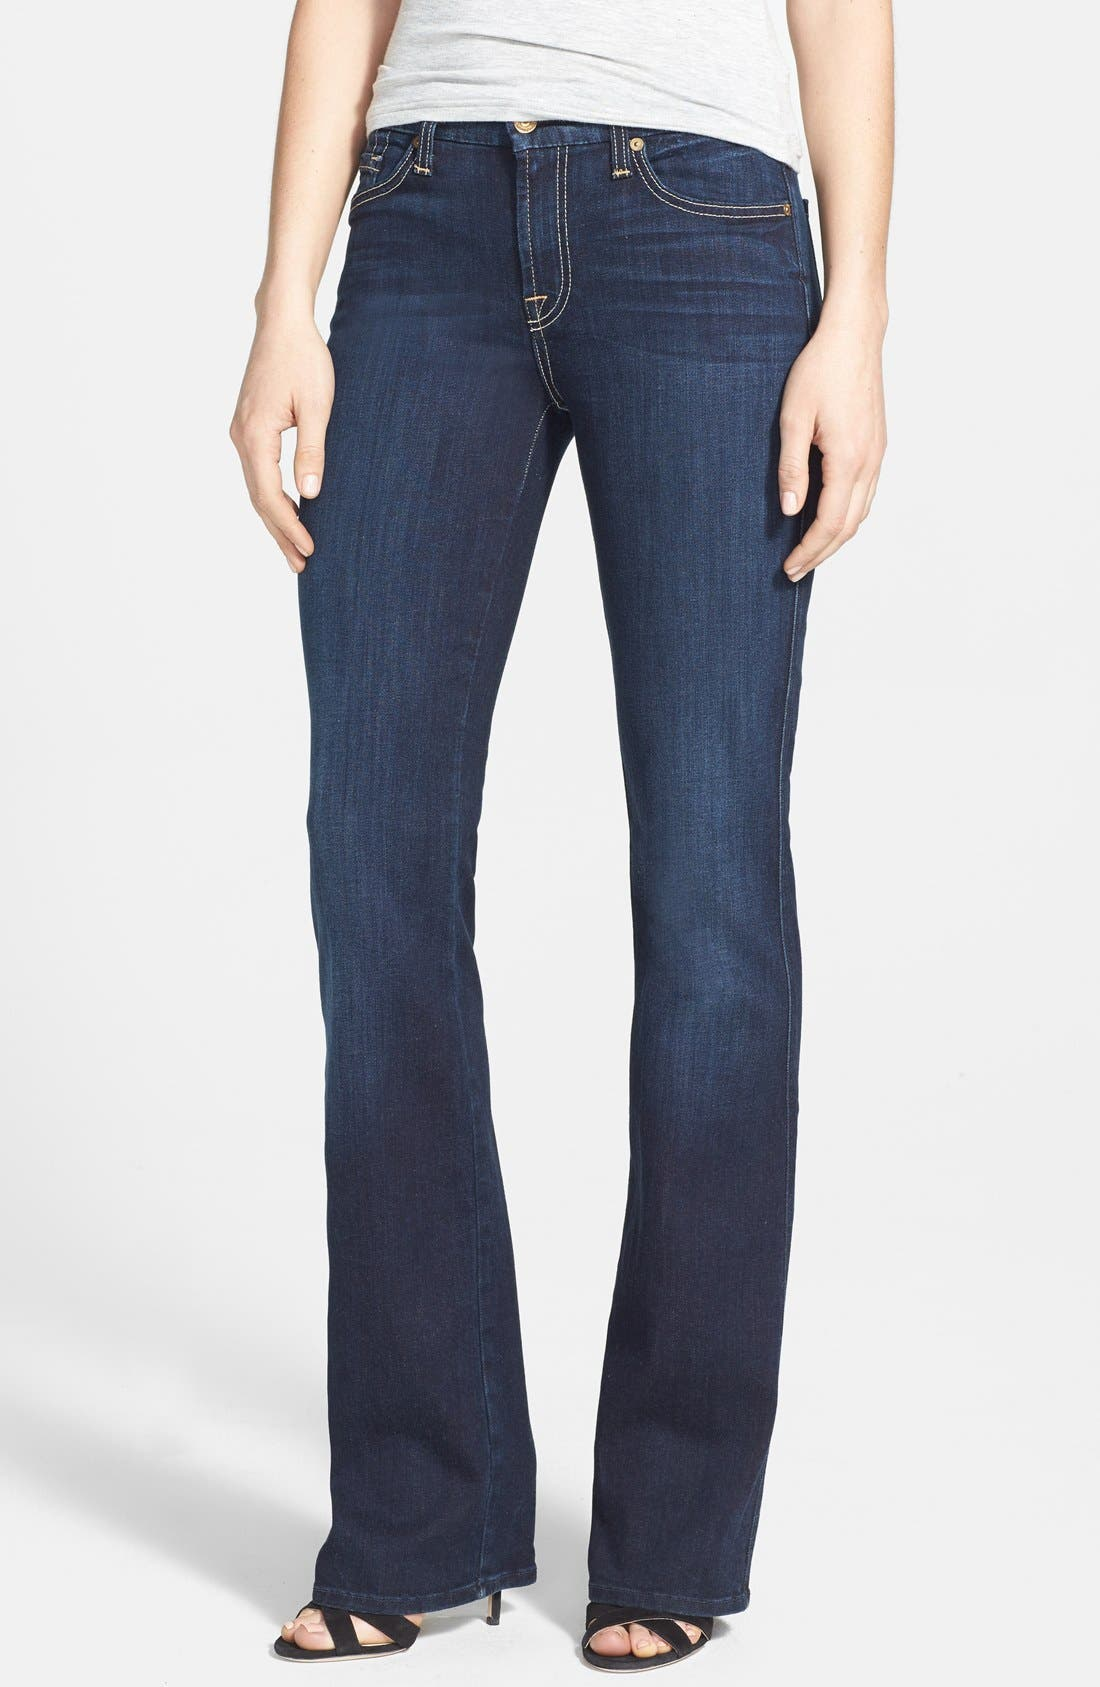 Alternate Image 1 Selected - 7 For All Mankind® 'Kimmie' Bootcut Jeans (Black Night)